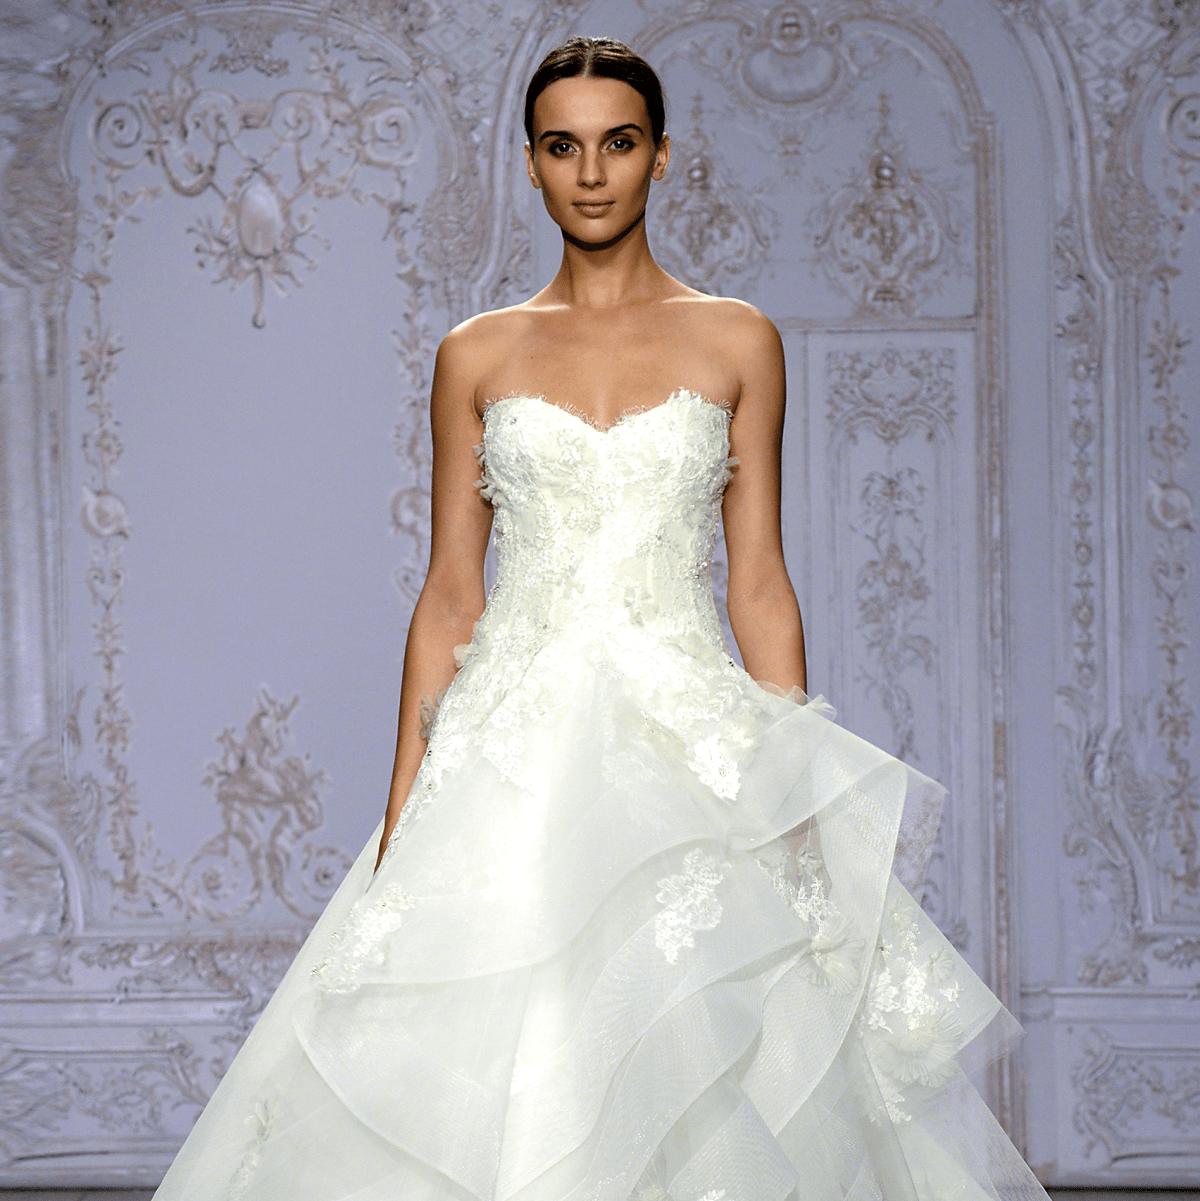 Houston, Joan Pillow, August 2015, wedding gown